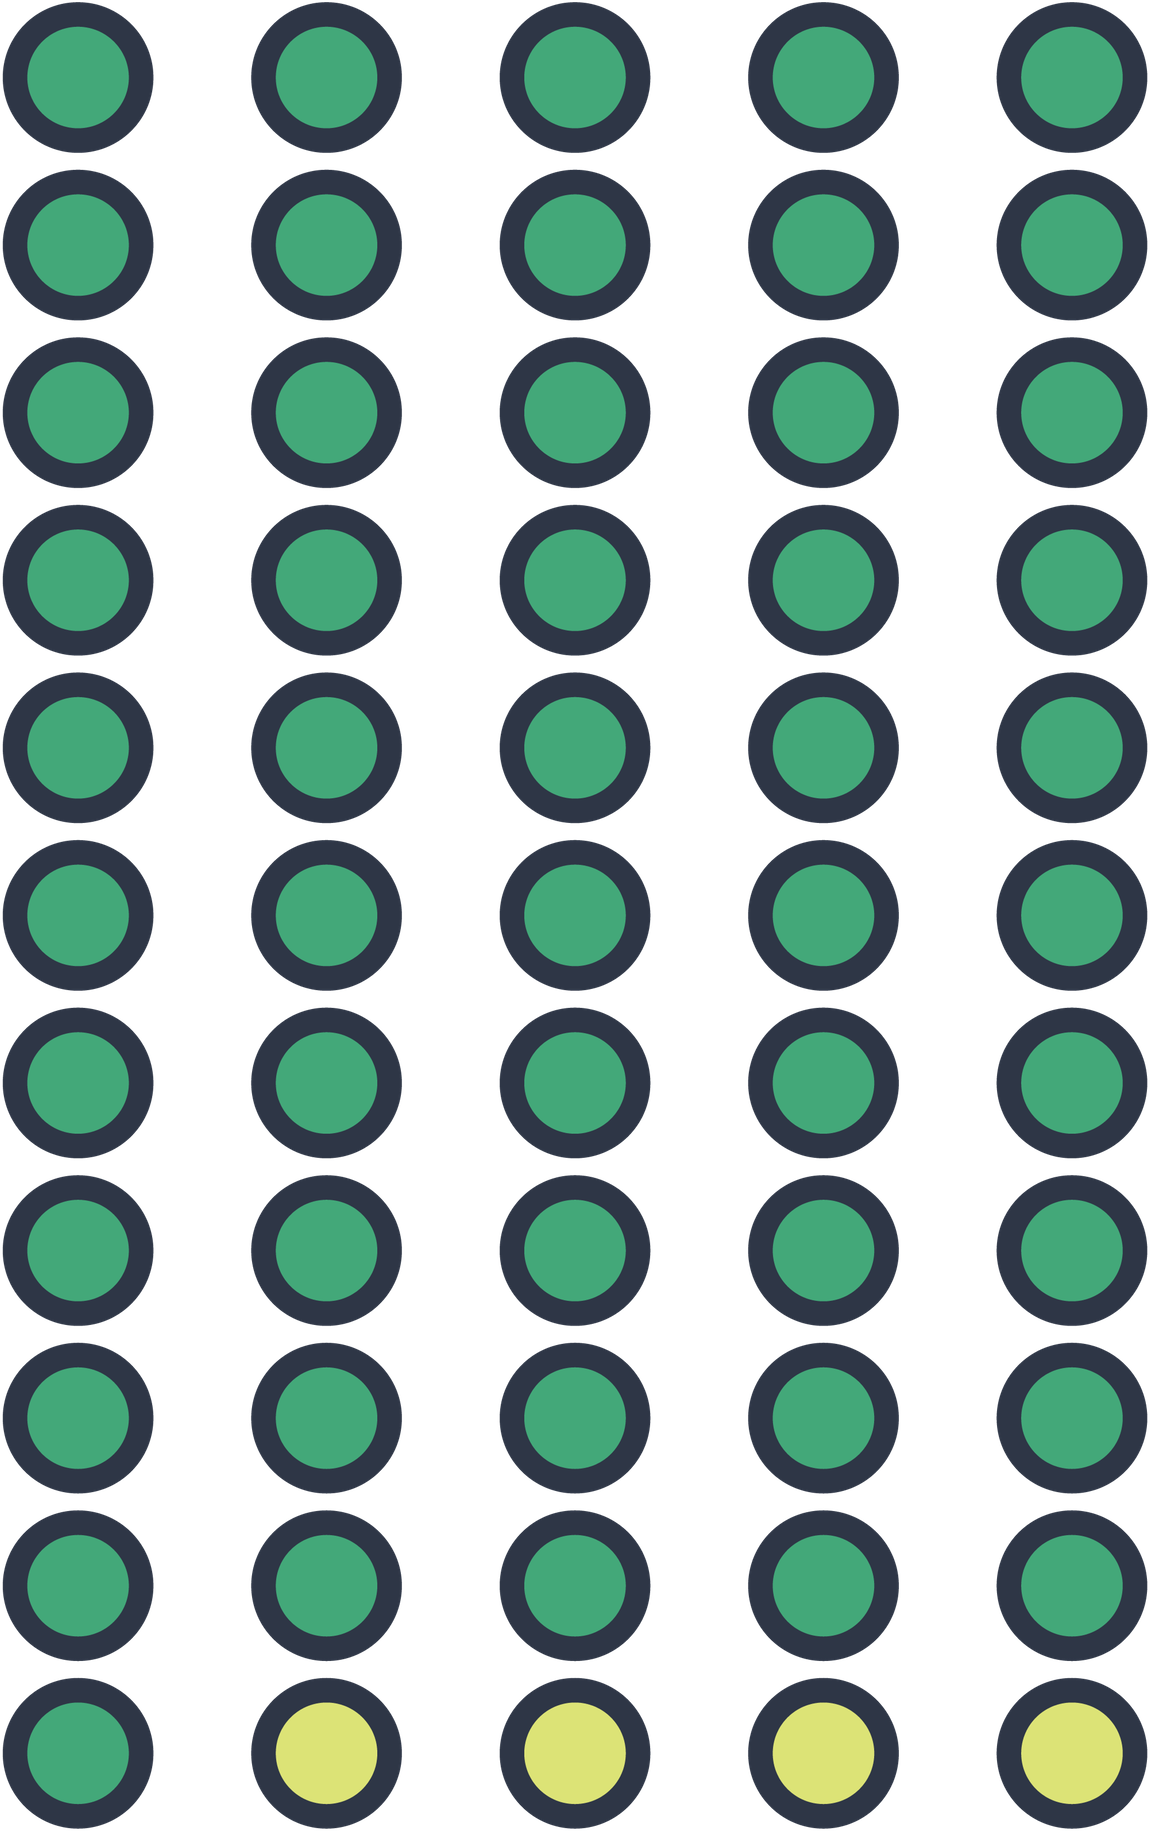 Grid of colored dots representing the 94% interest in marketing careers.